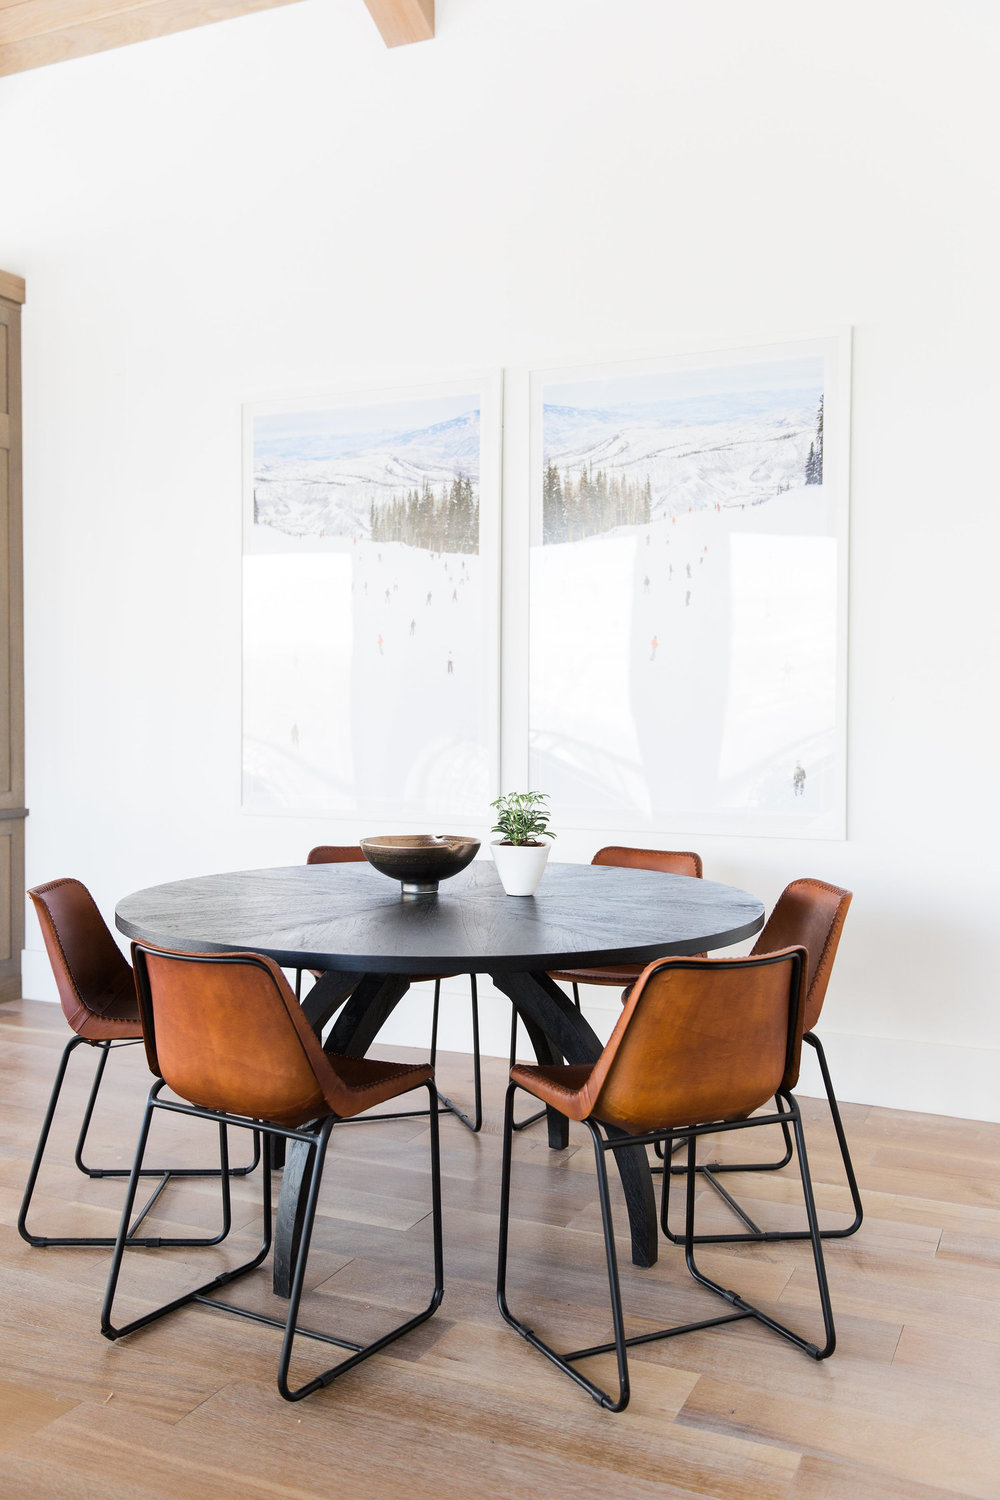 Round dining table with orange chairs